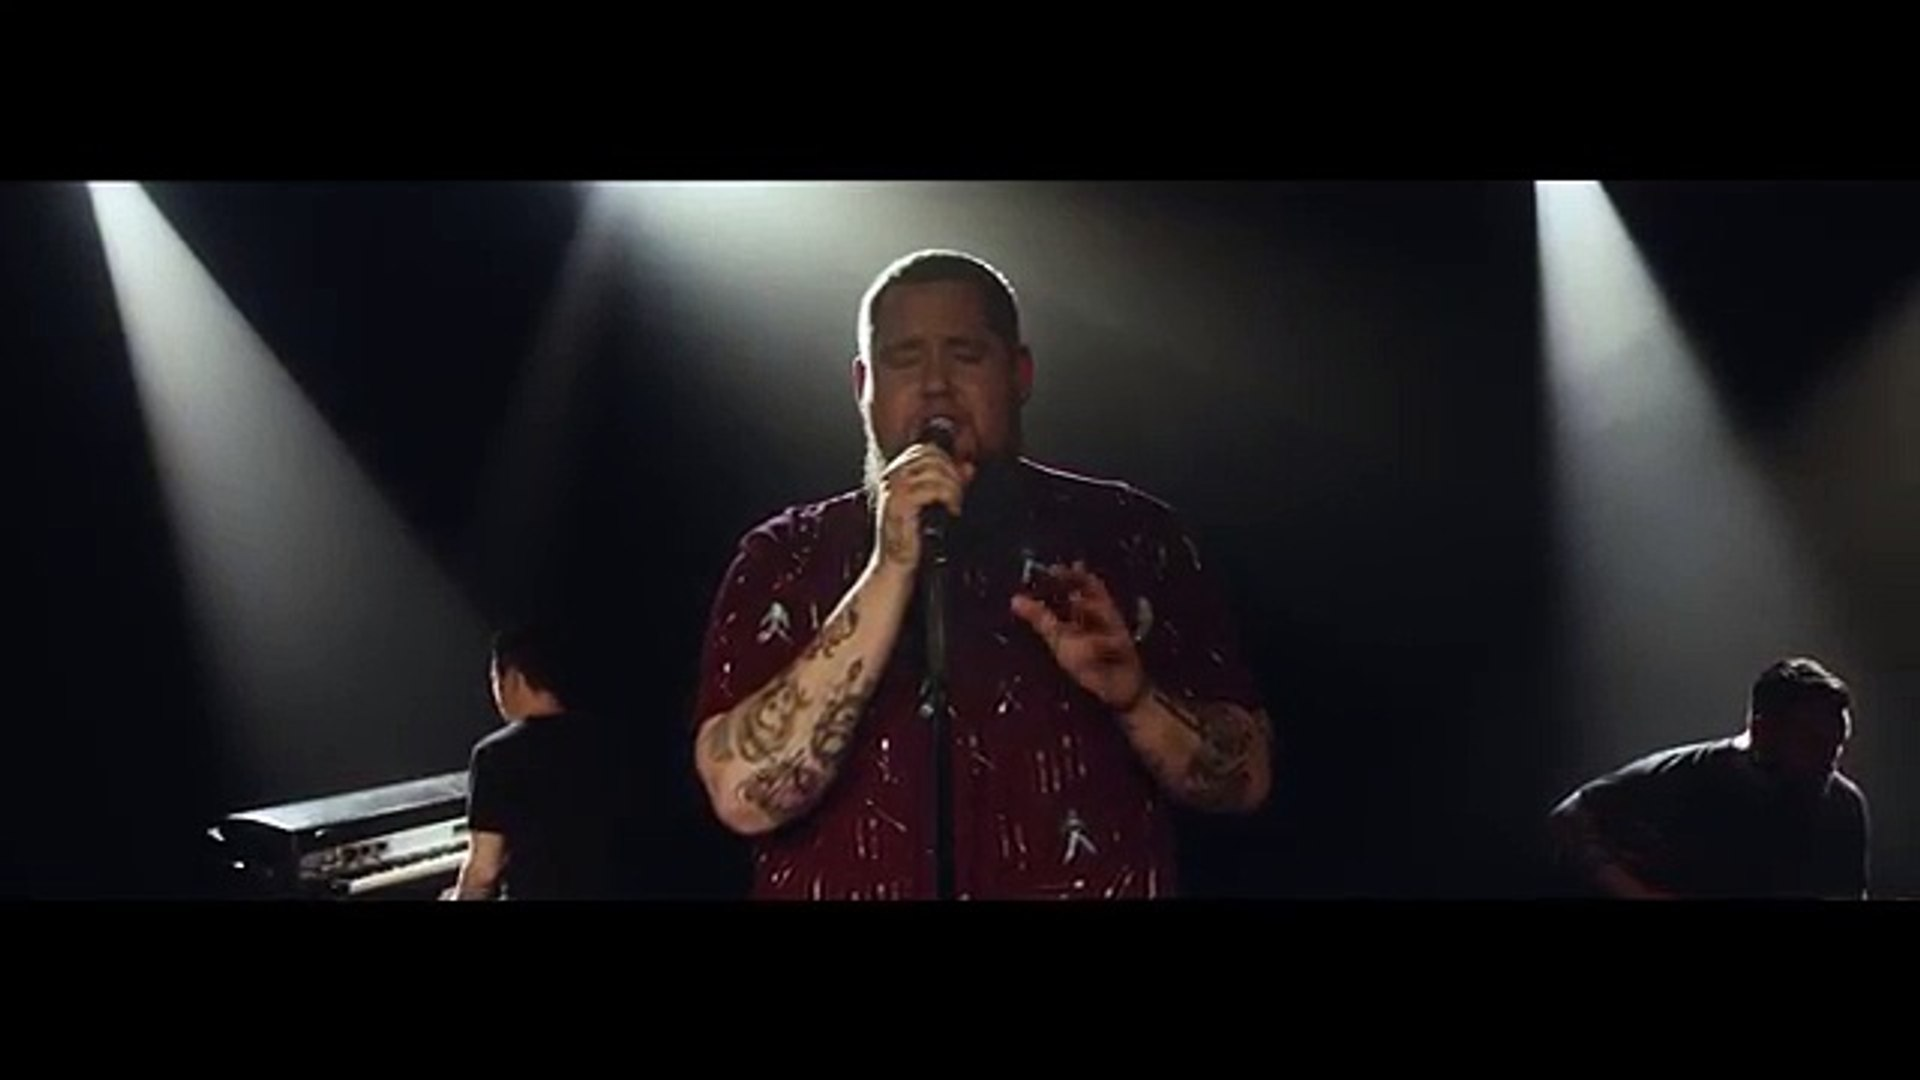 Rag'N'Bone Man - As You Are (Live) - Stripped (Vevo UK LIFT)